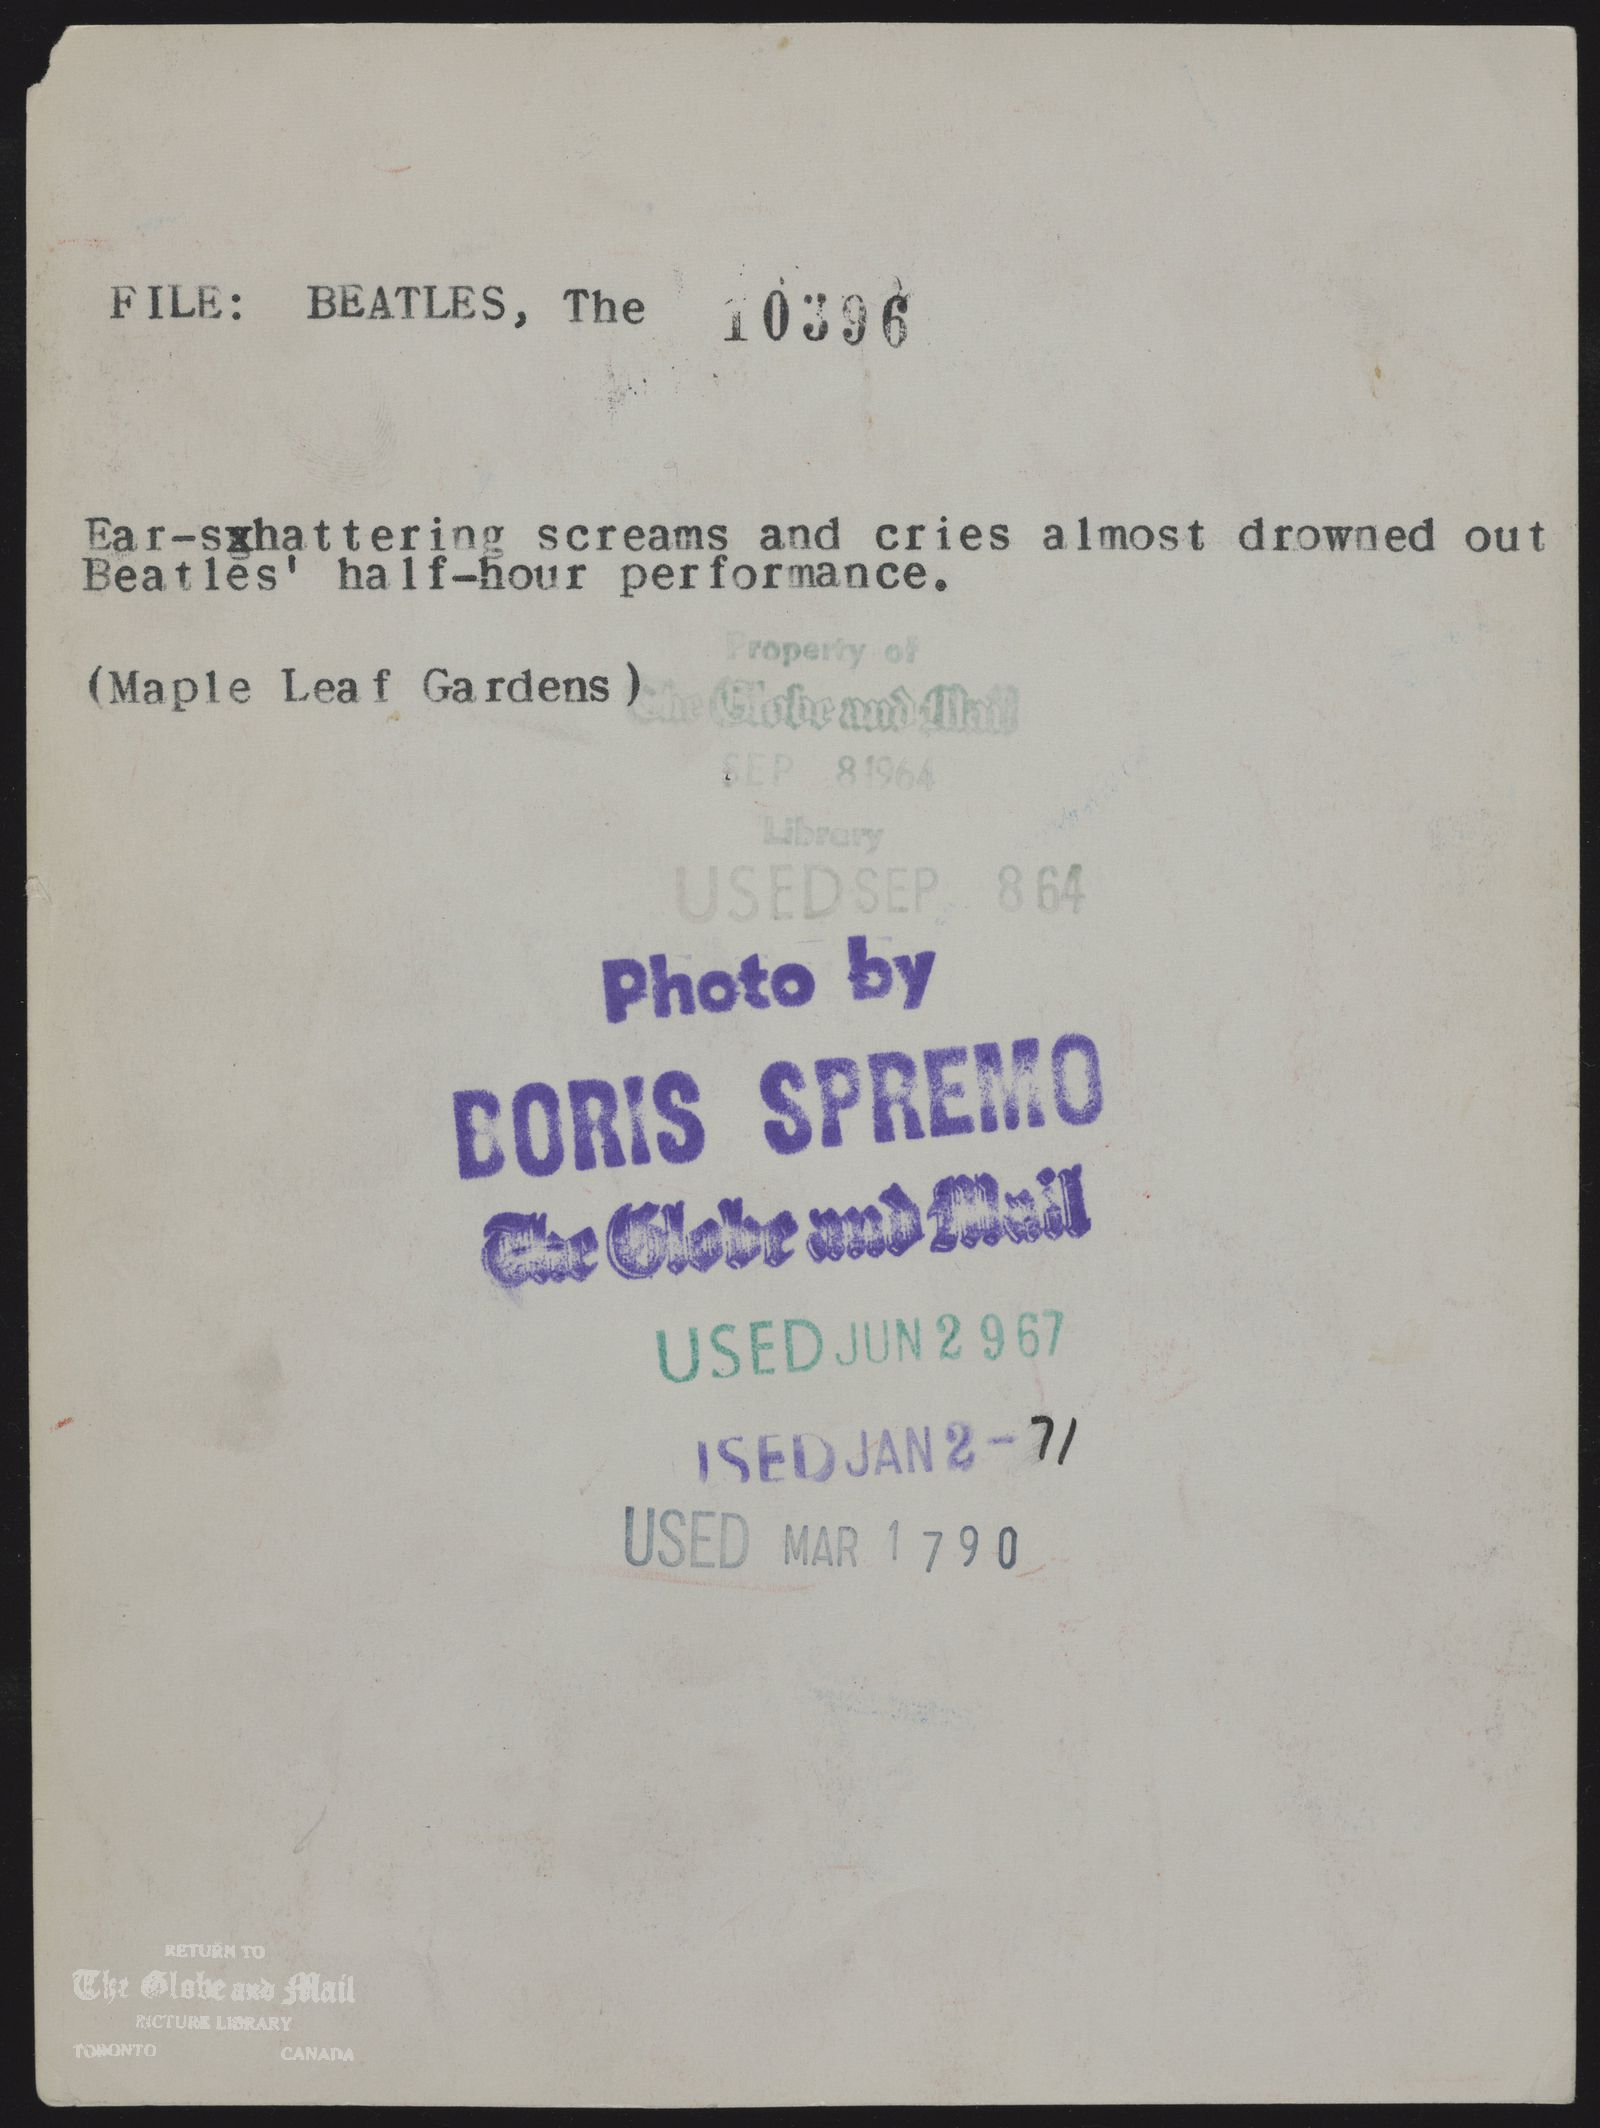 The notes written and typed on the back of this photograph, from the time it was printed, are as follows: BEATLES, The Ear-shattering screams and cries almost drowned out Beatles half-hour performance. (Maple Leaf Gardens)September 8, 1964,BORIS SPREMO